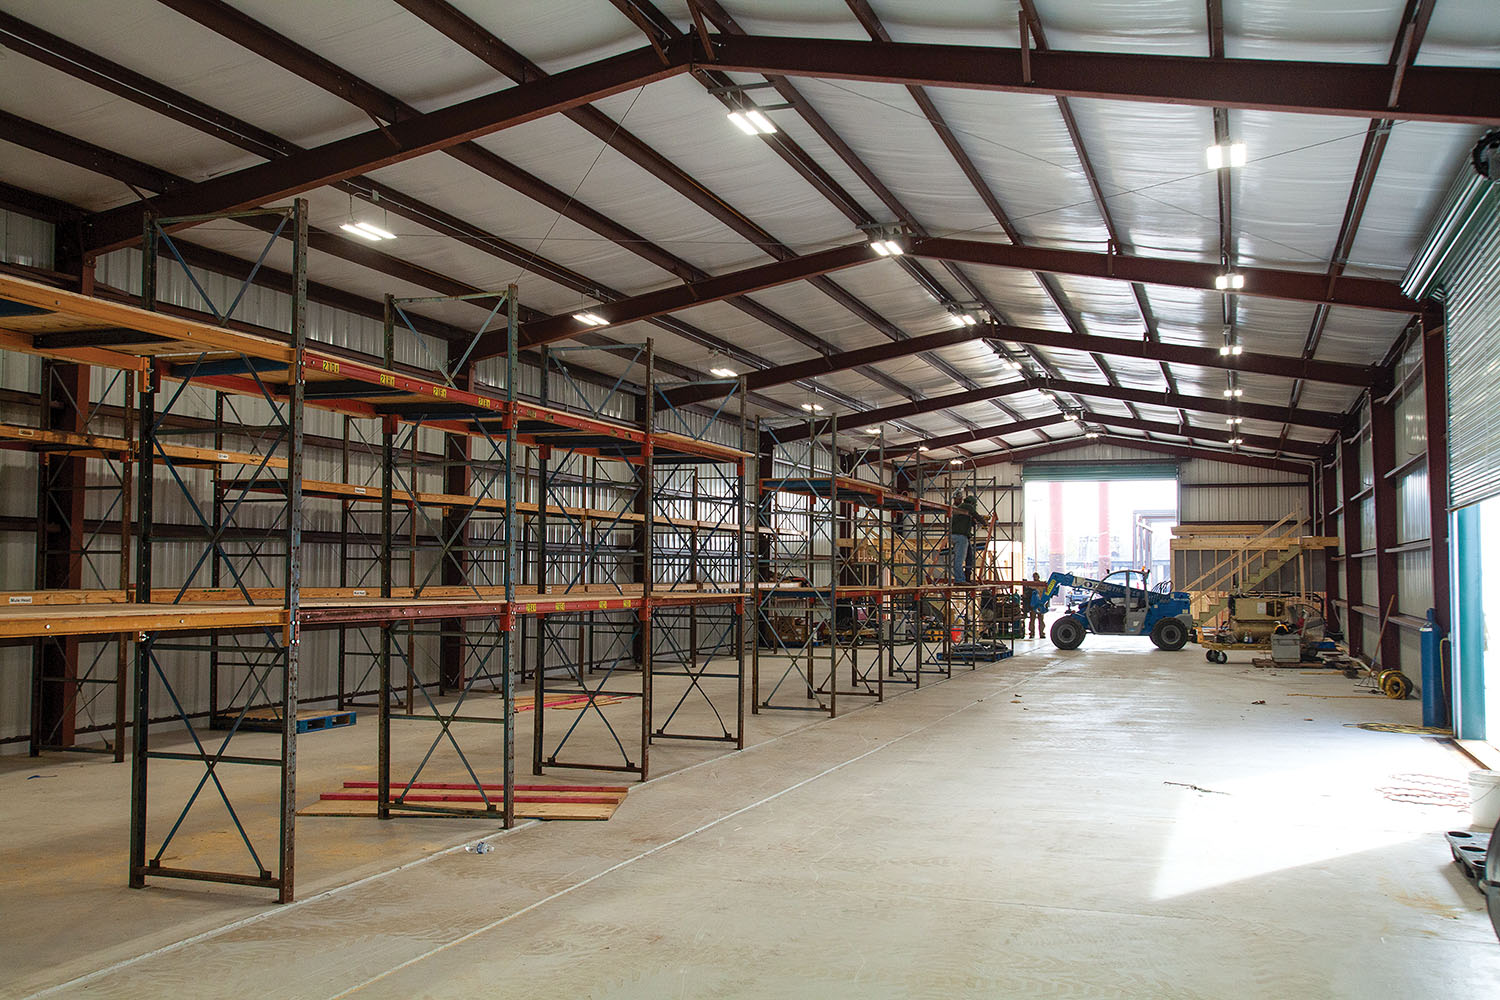 Shamrock Marine's new floating warehouse offers 7,200 square feet of storage space, divided into 88 bins that can fit one and two pallets' worth of supplies. (Photo by Frank McCormack)